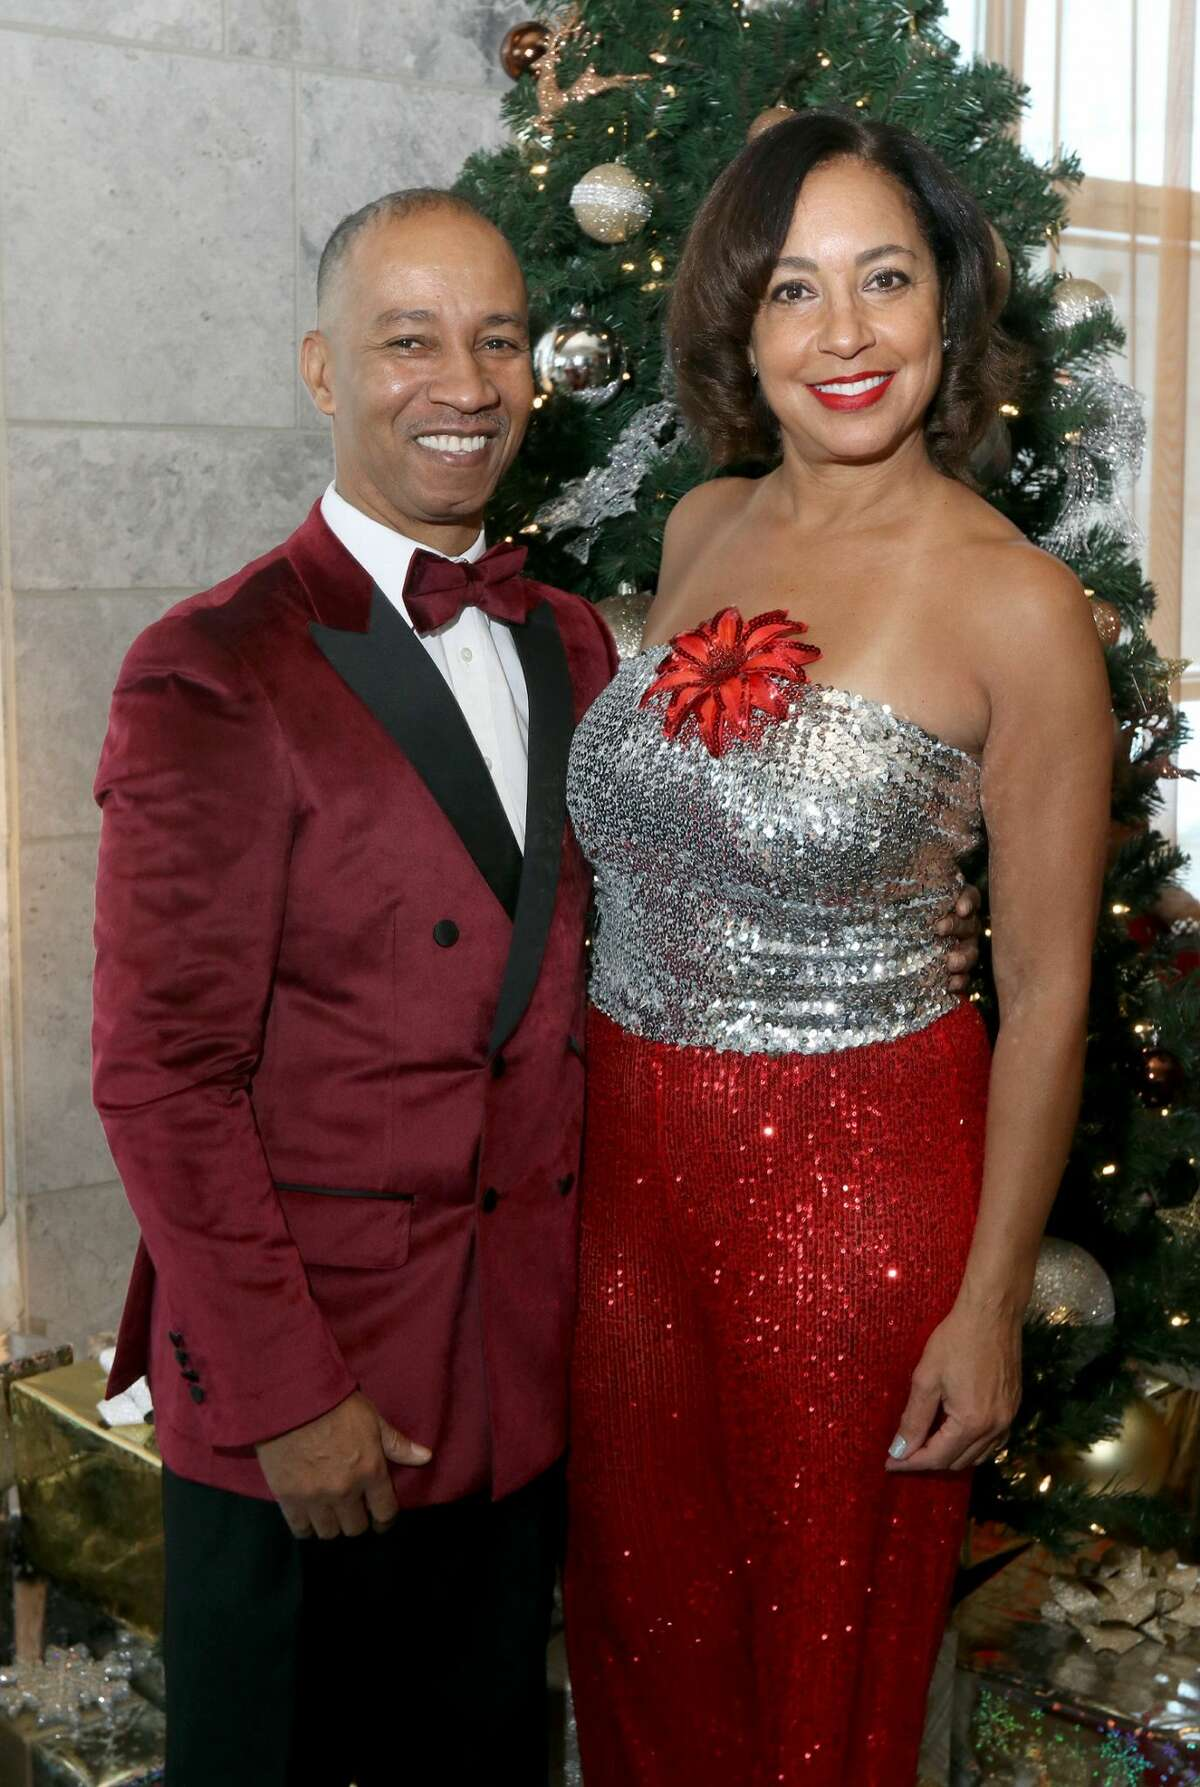 Were you Seen at GirlFriends Inc.'s 27th annual Paint the Town Red fundraiser on Sunday, December 8, 2019 at Rivers Casino & Resort in Schenectady?